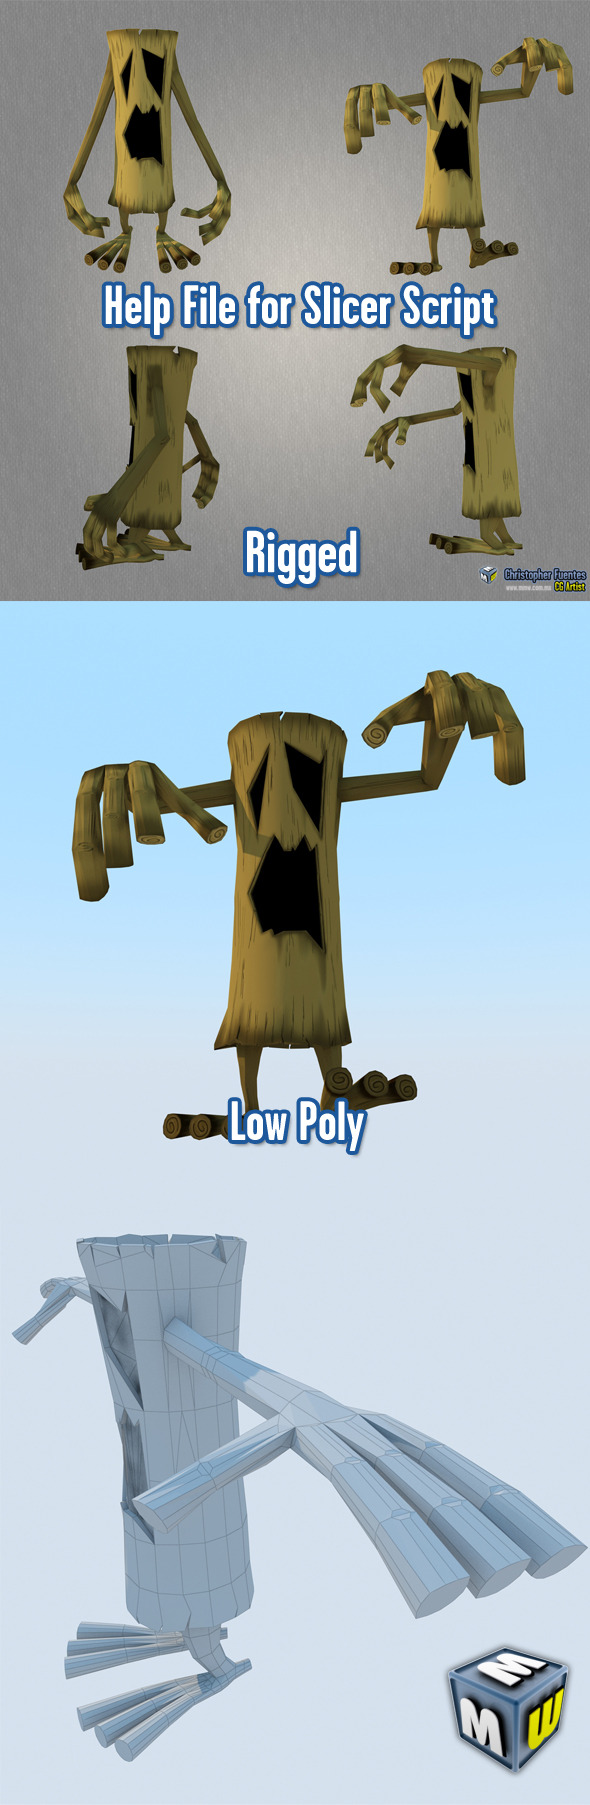 3DOcean TreeMonster Low Poly Character MAX 2011 5899447